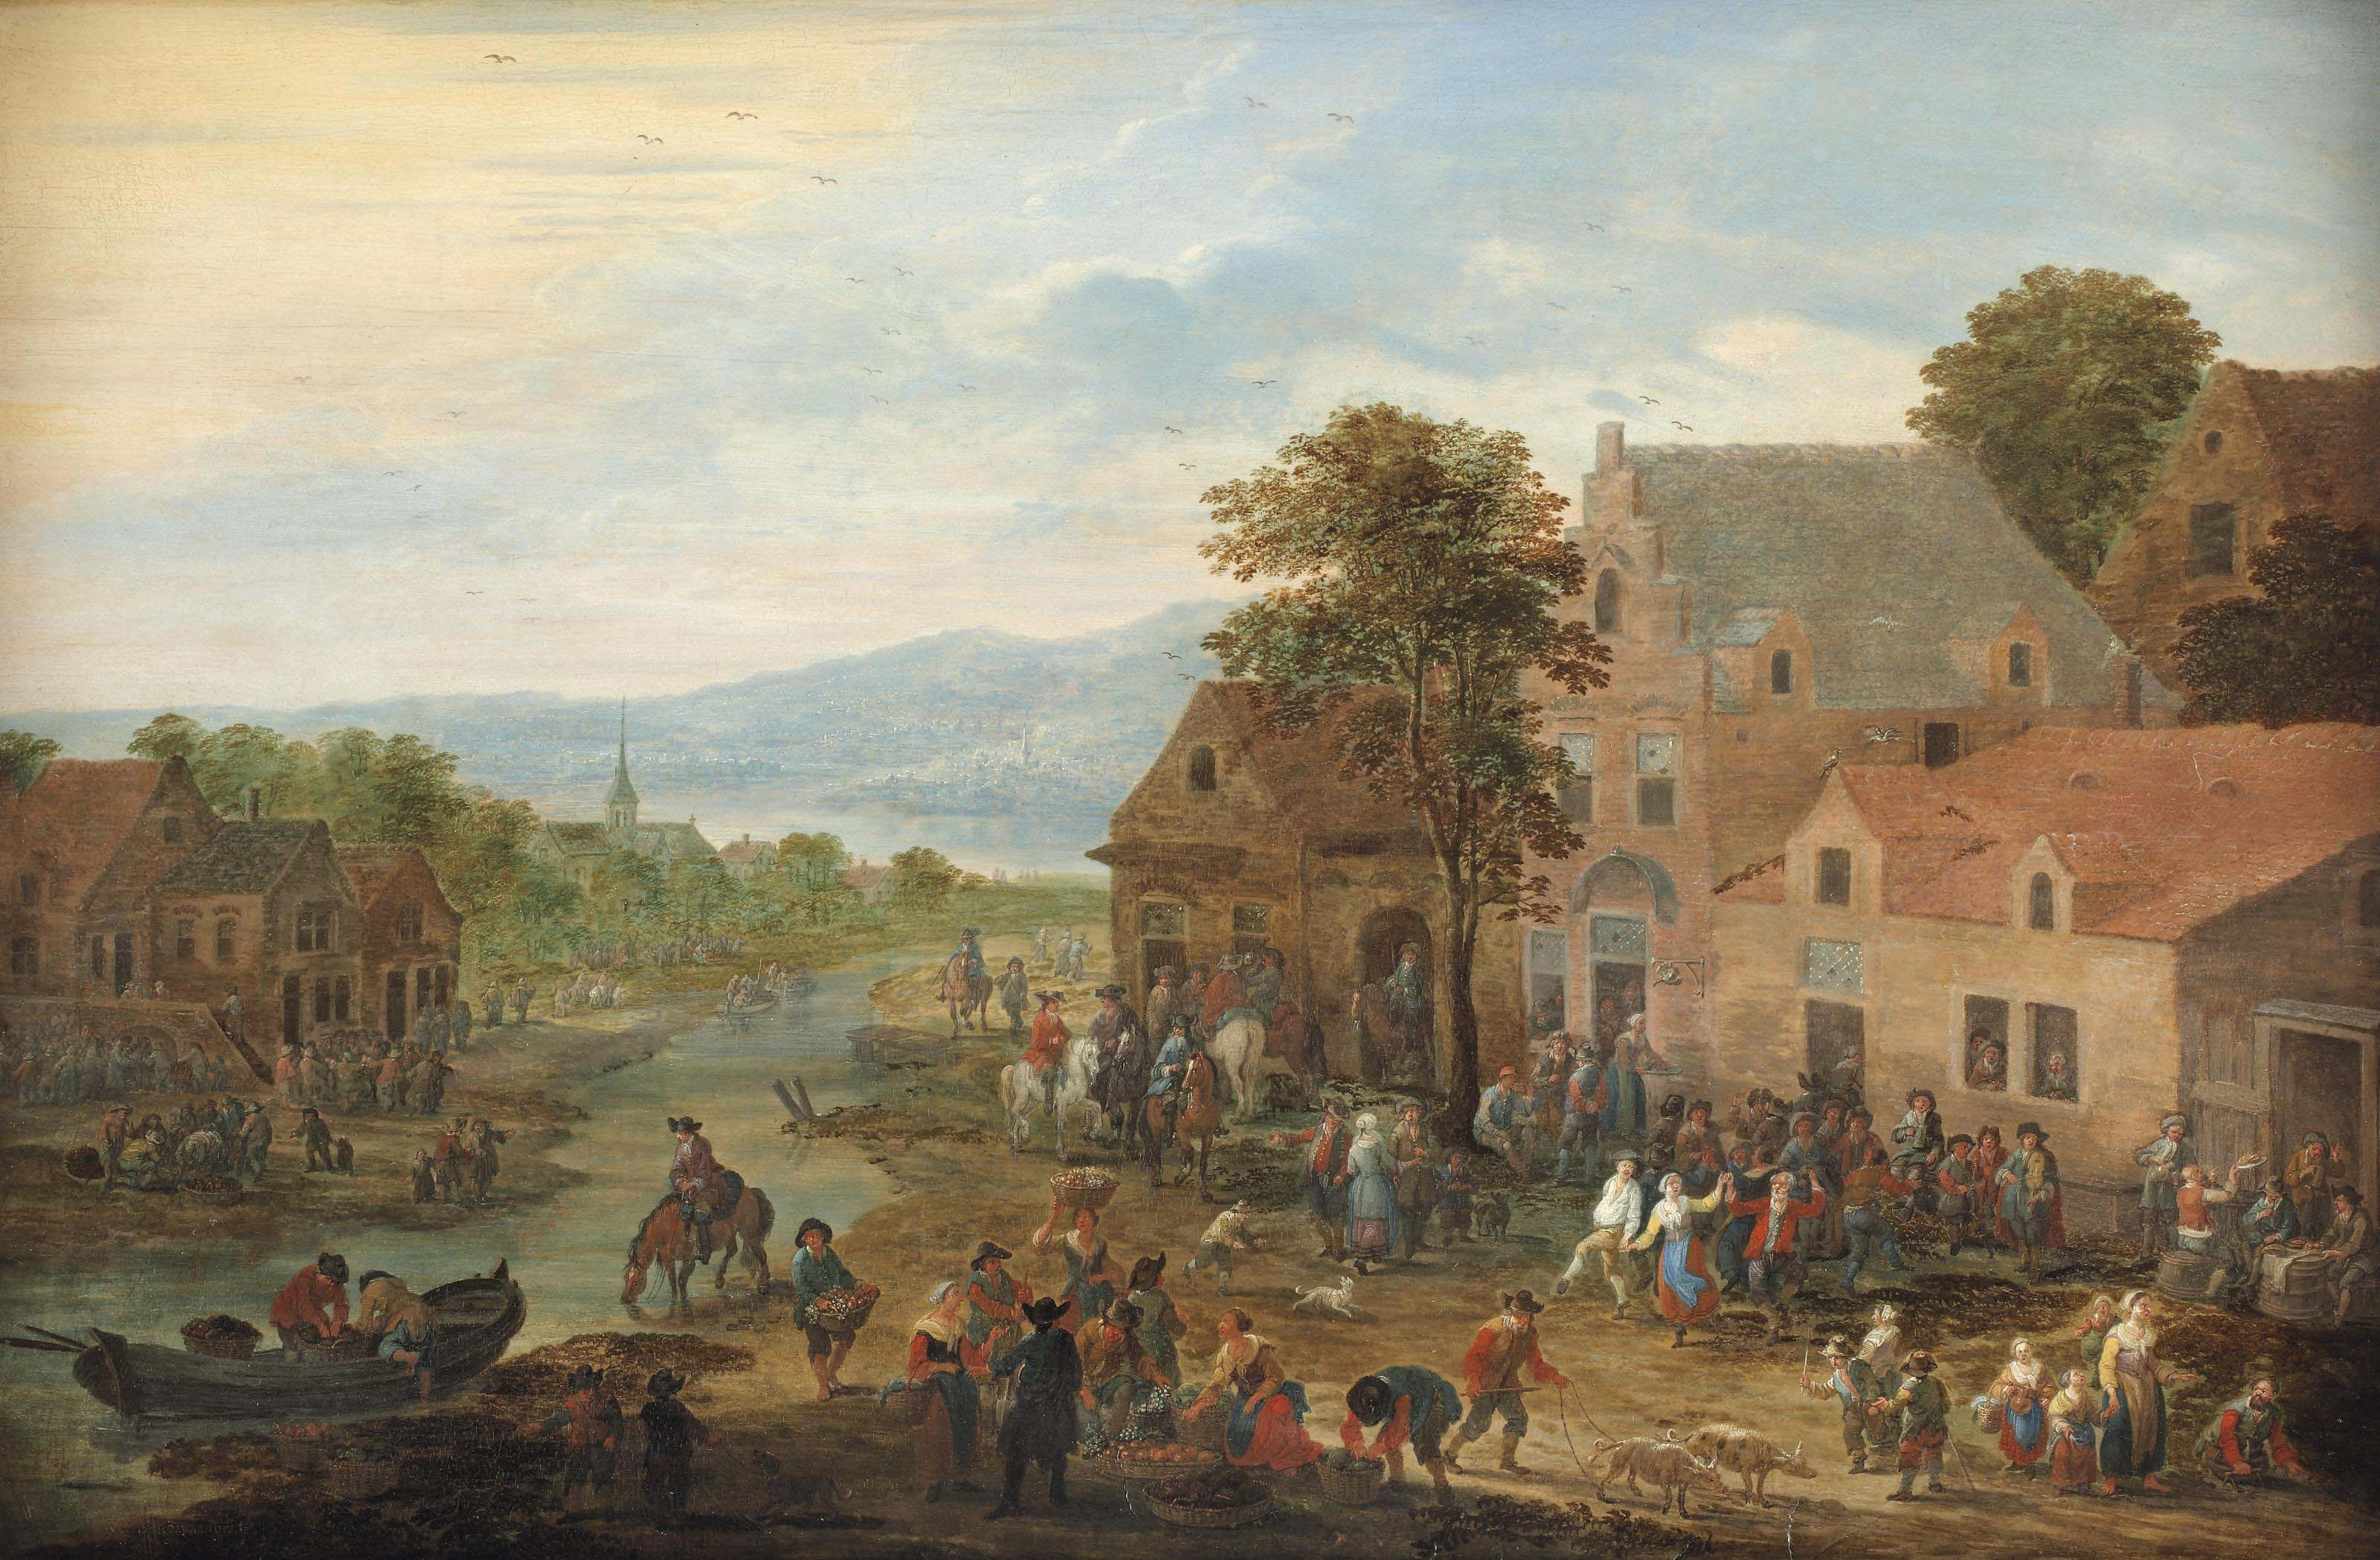 A townscape with fruit vendors, horsemen and villagers making merry